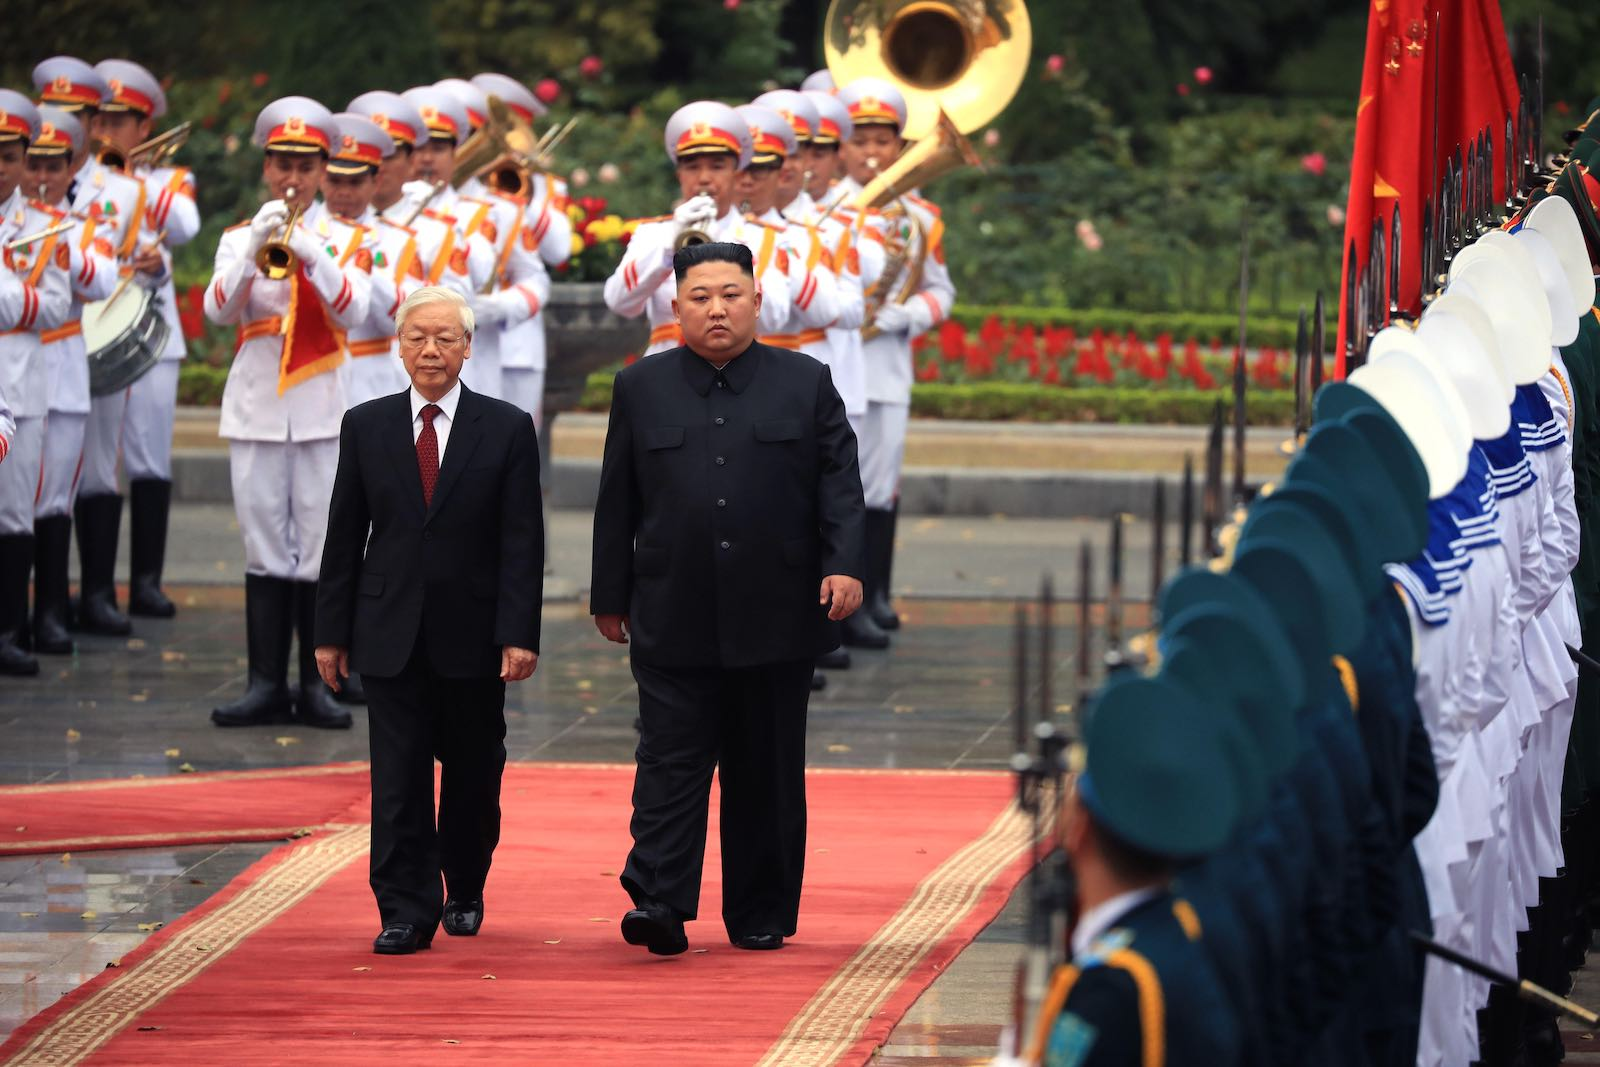 North Korean leader Kim Jong-un (right) attends a welcome ceremony with Vietnamese President Nguyen Phu Trong, 1 March 2019 in Hanoi (The Asahi Shimbun via Getty Images)